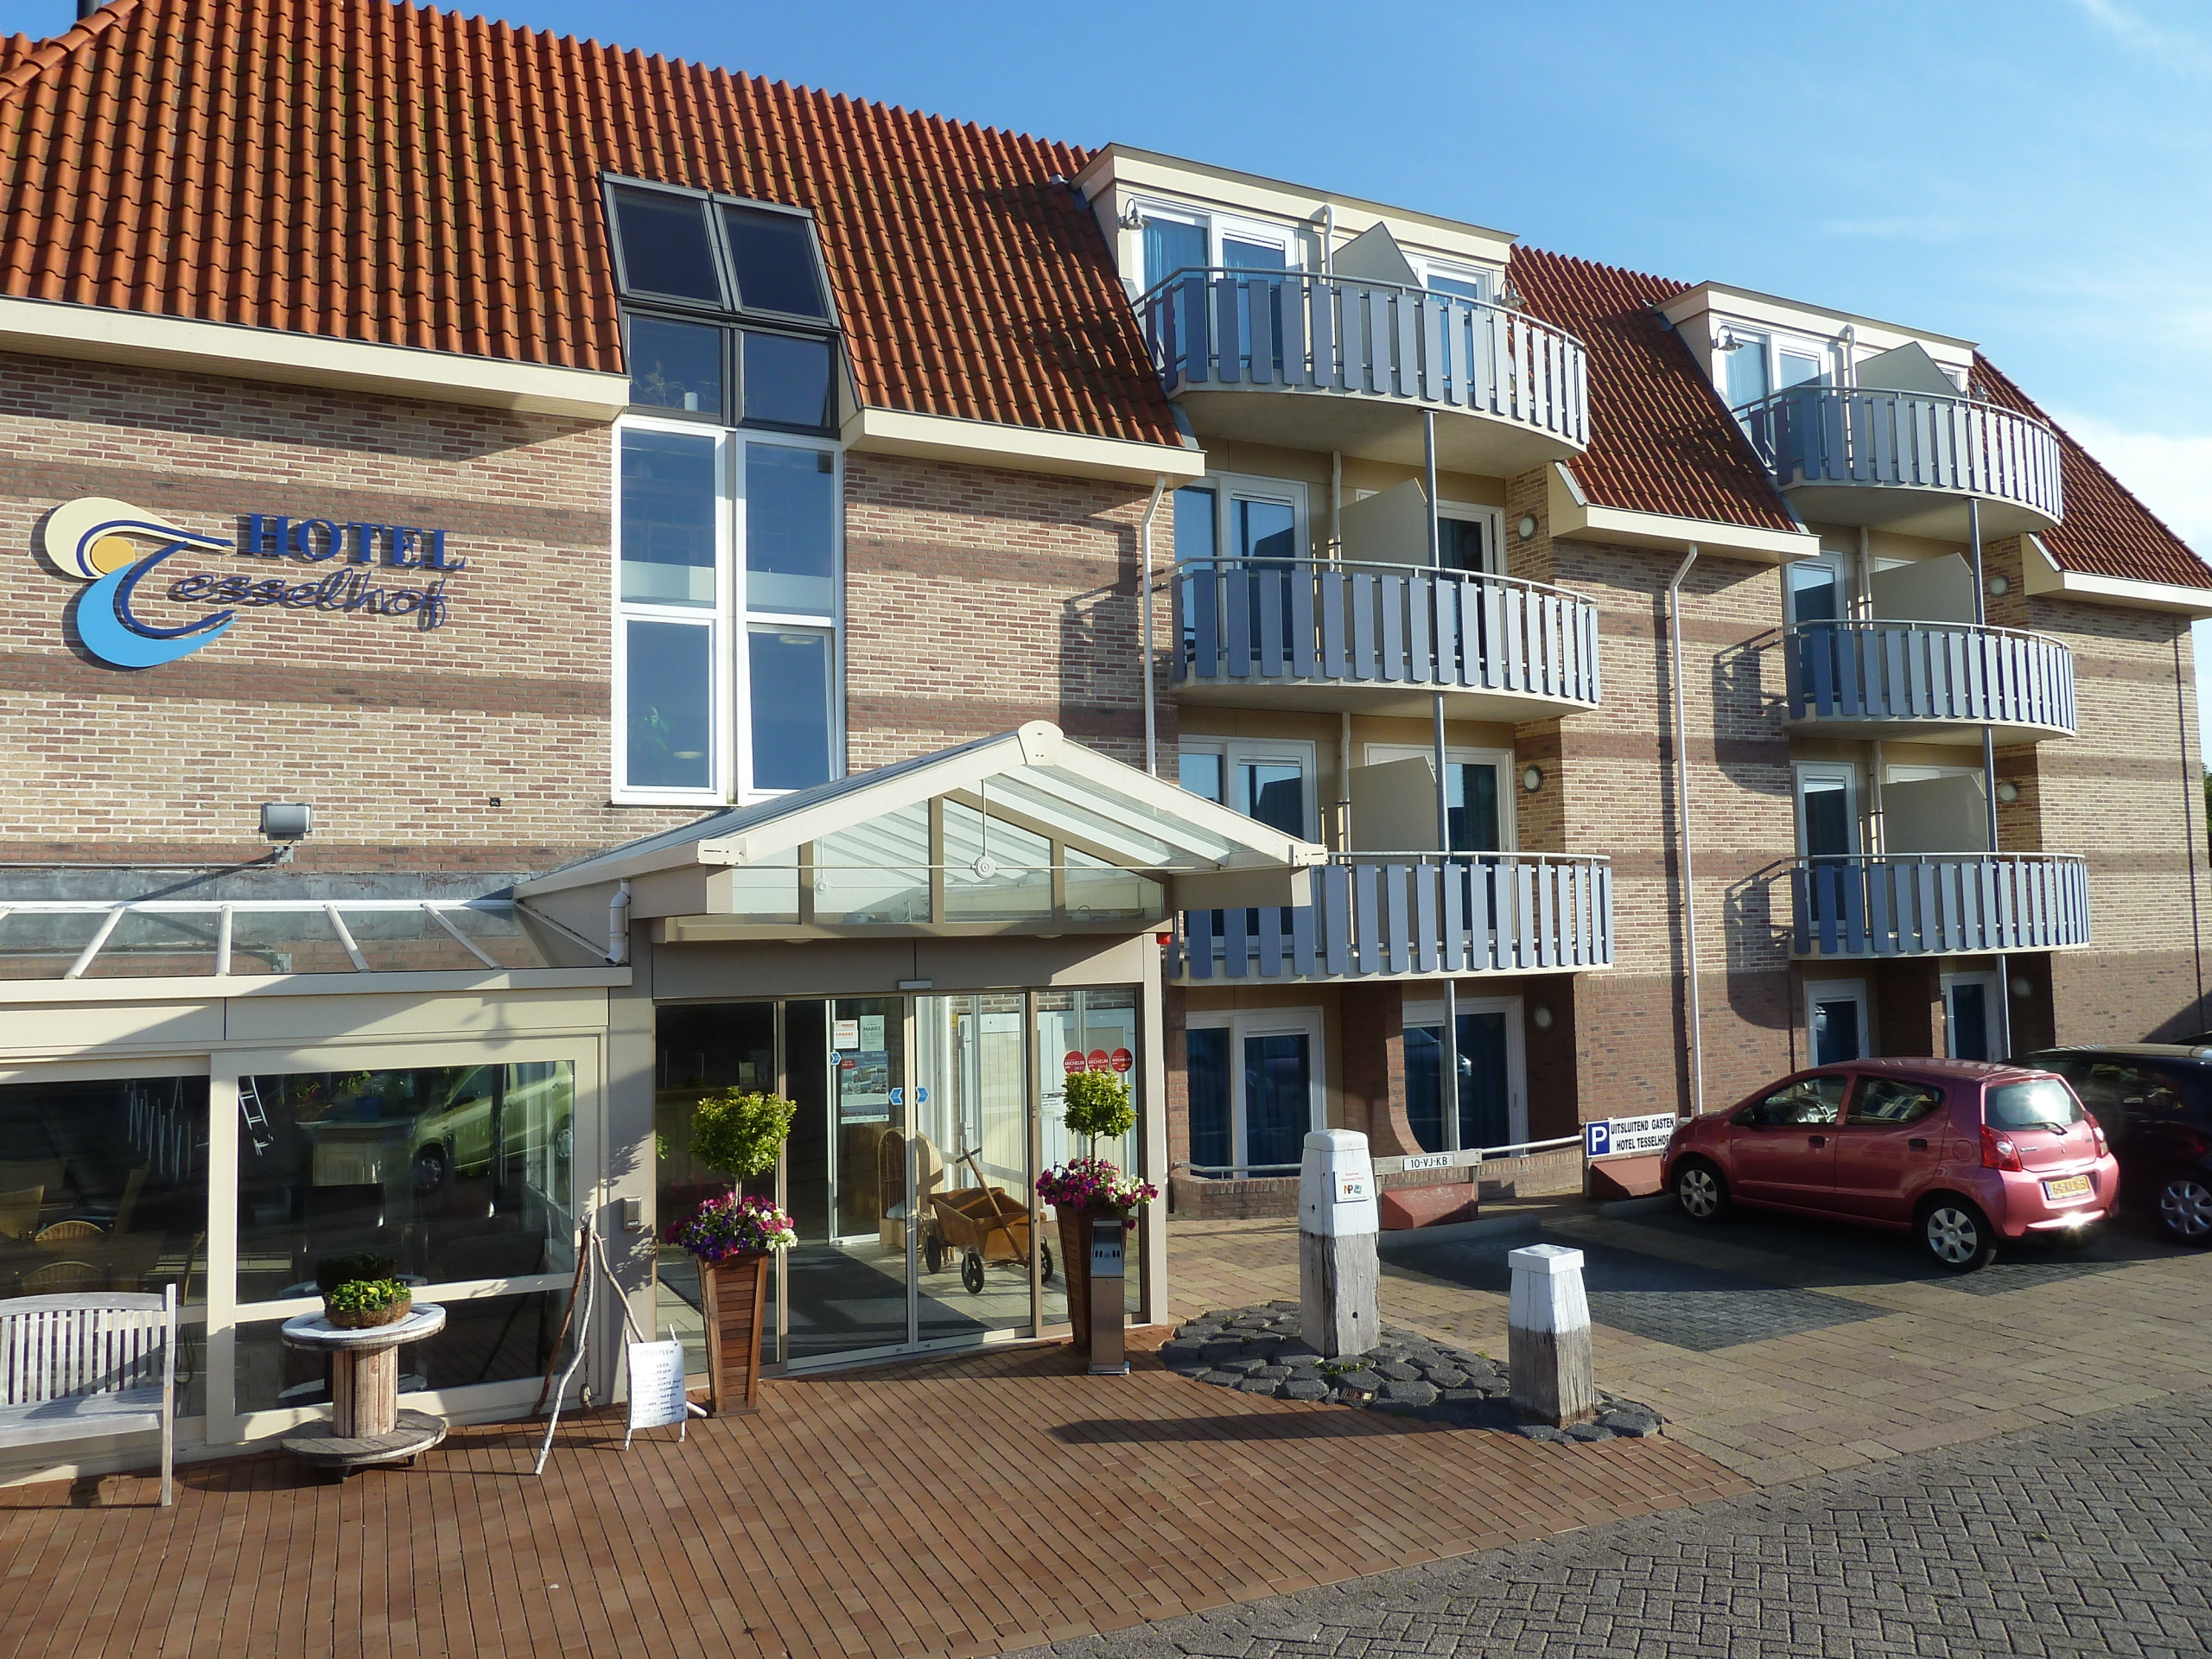 Spacious and comfortable hotel room centrally located in De Koog